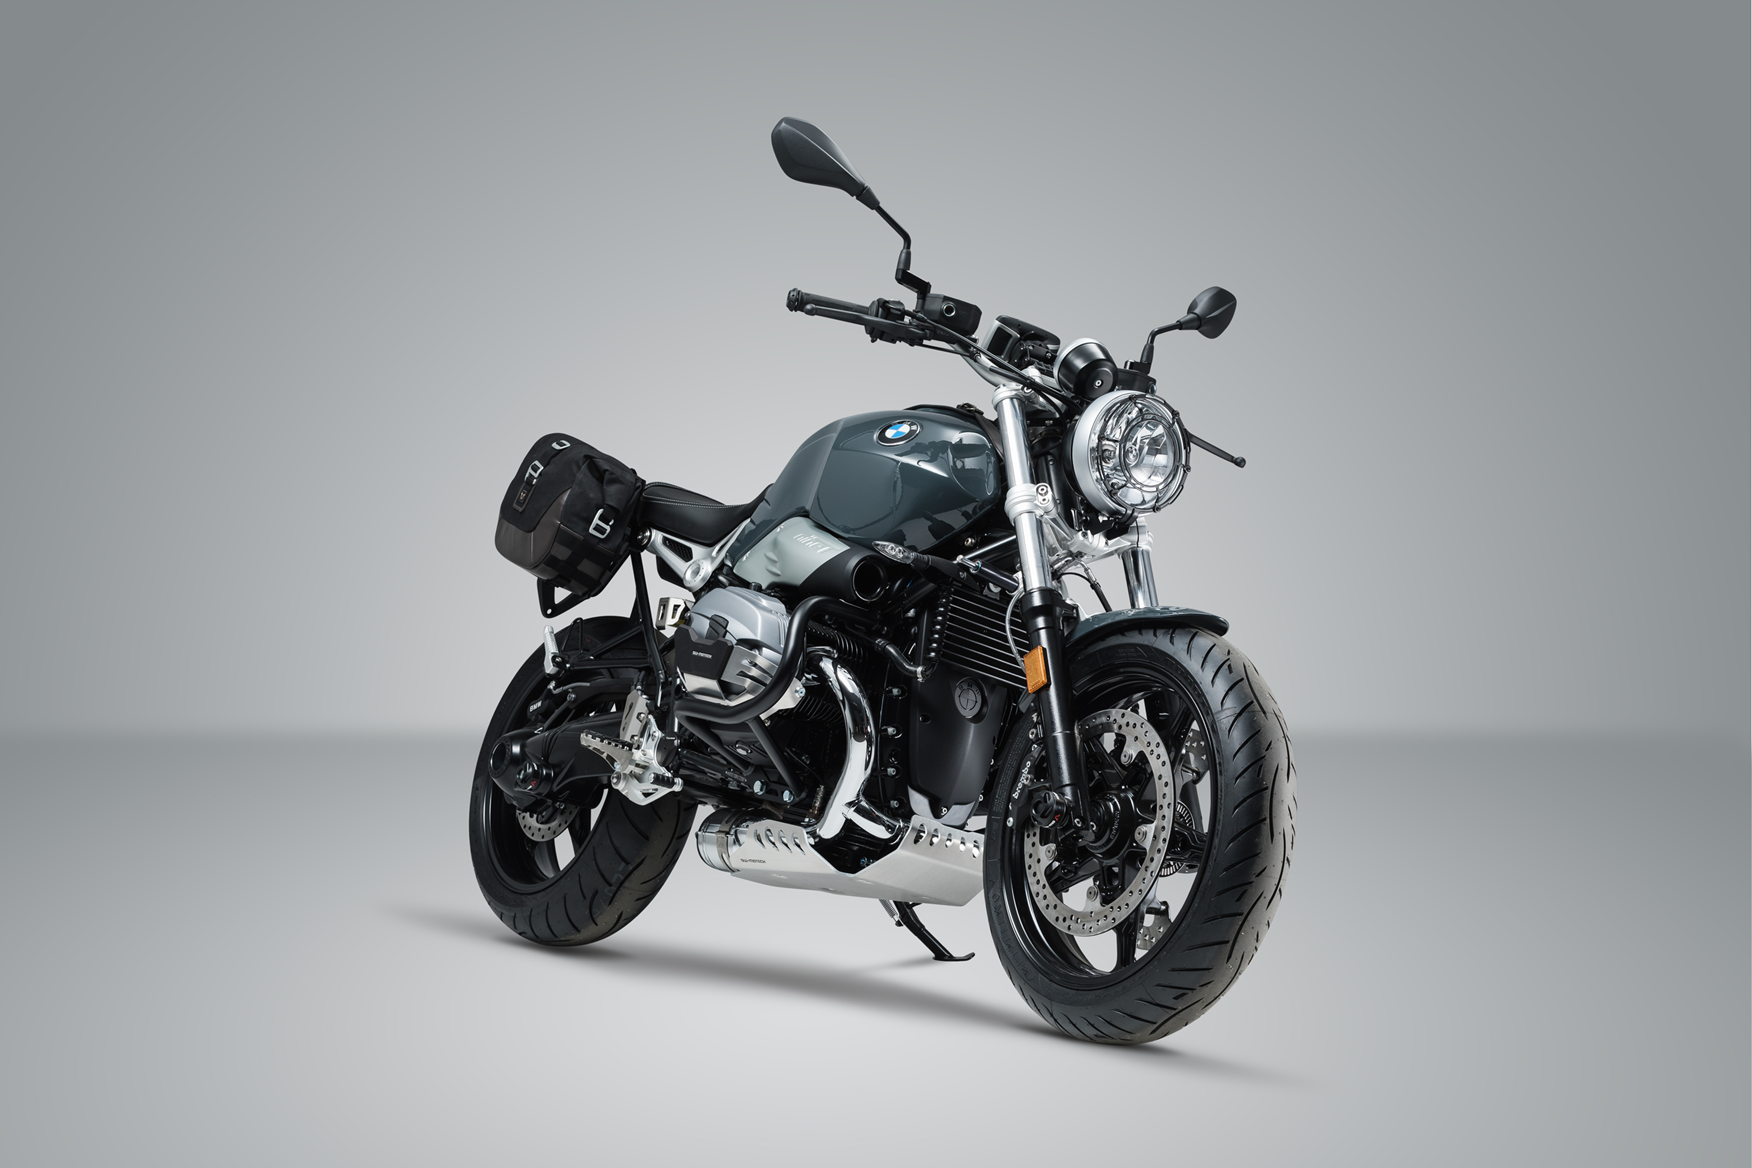 sw motech release accessories for bmw r ninet pure mcn. Black Bedroom Furniture Sets. Home Design Ideas